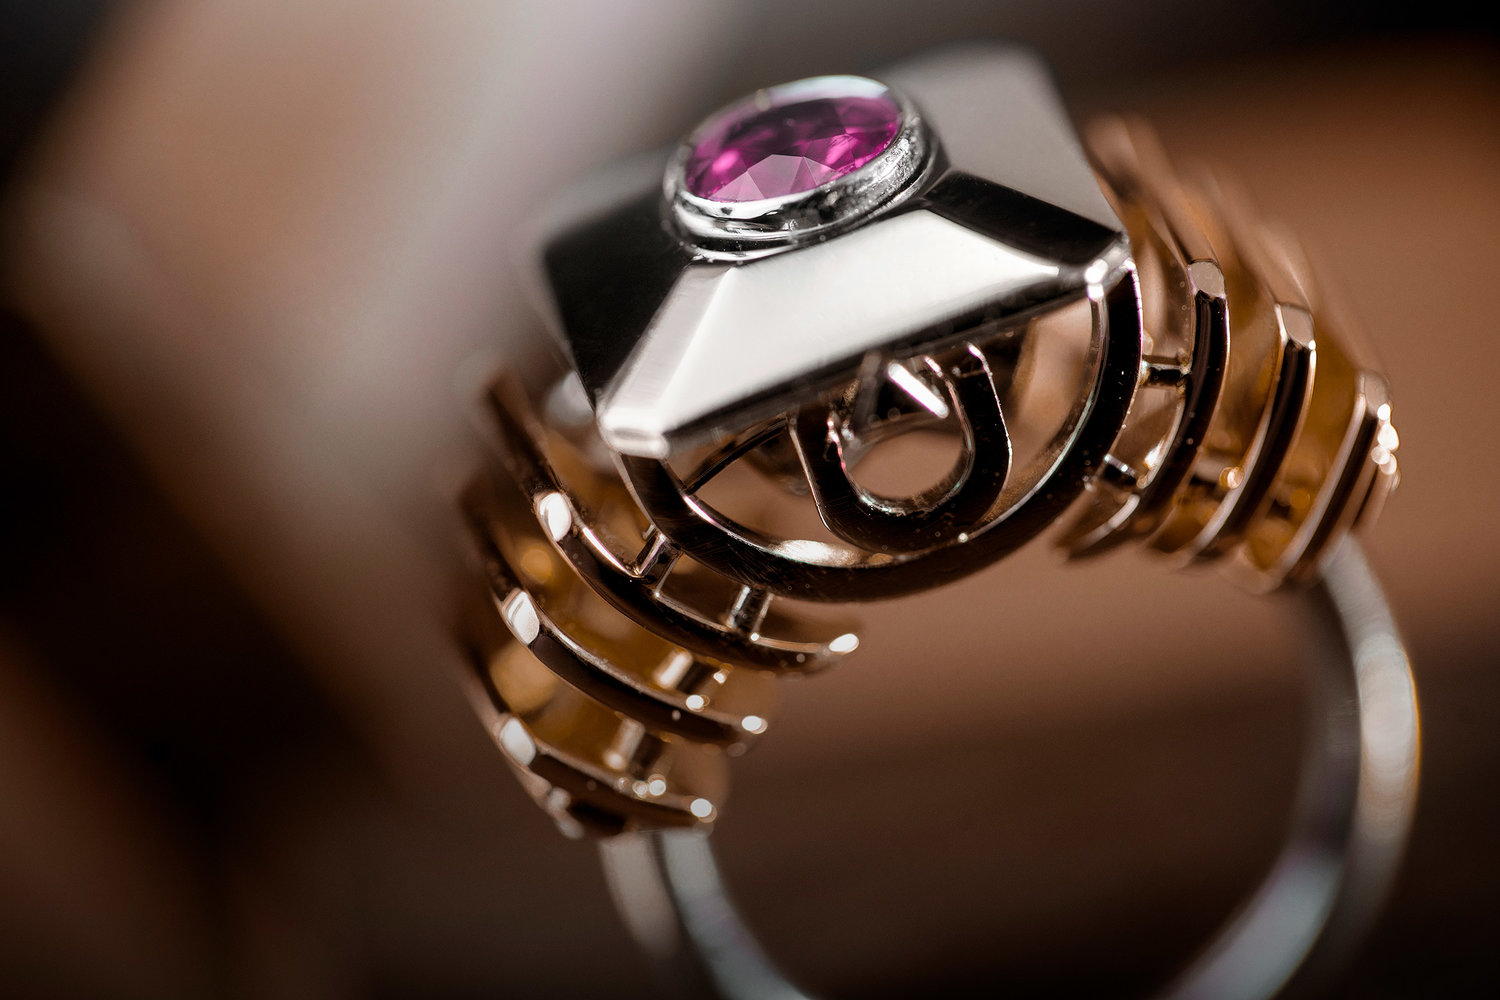 rose-and-crown-melbounre-gold-silver-rings-deco-luxury-australian_01.jpg